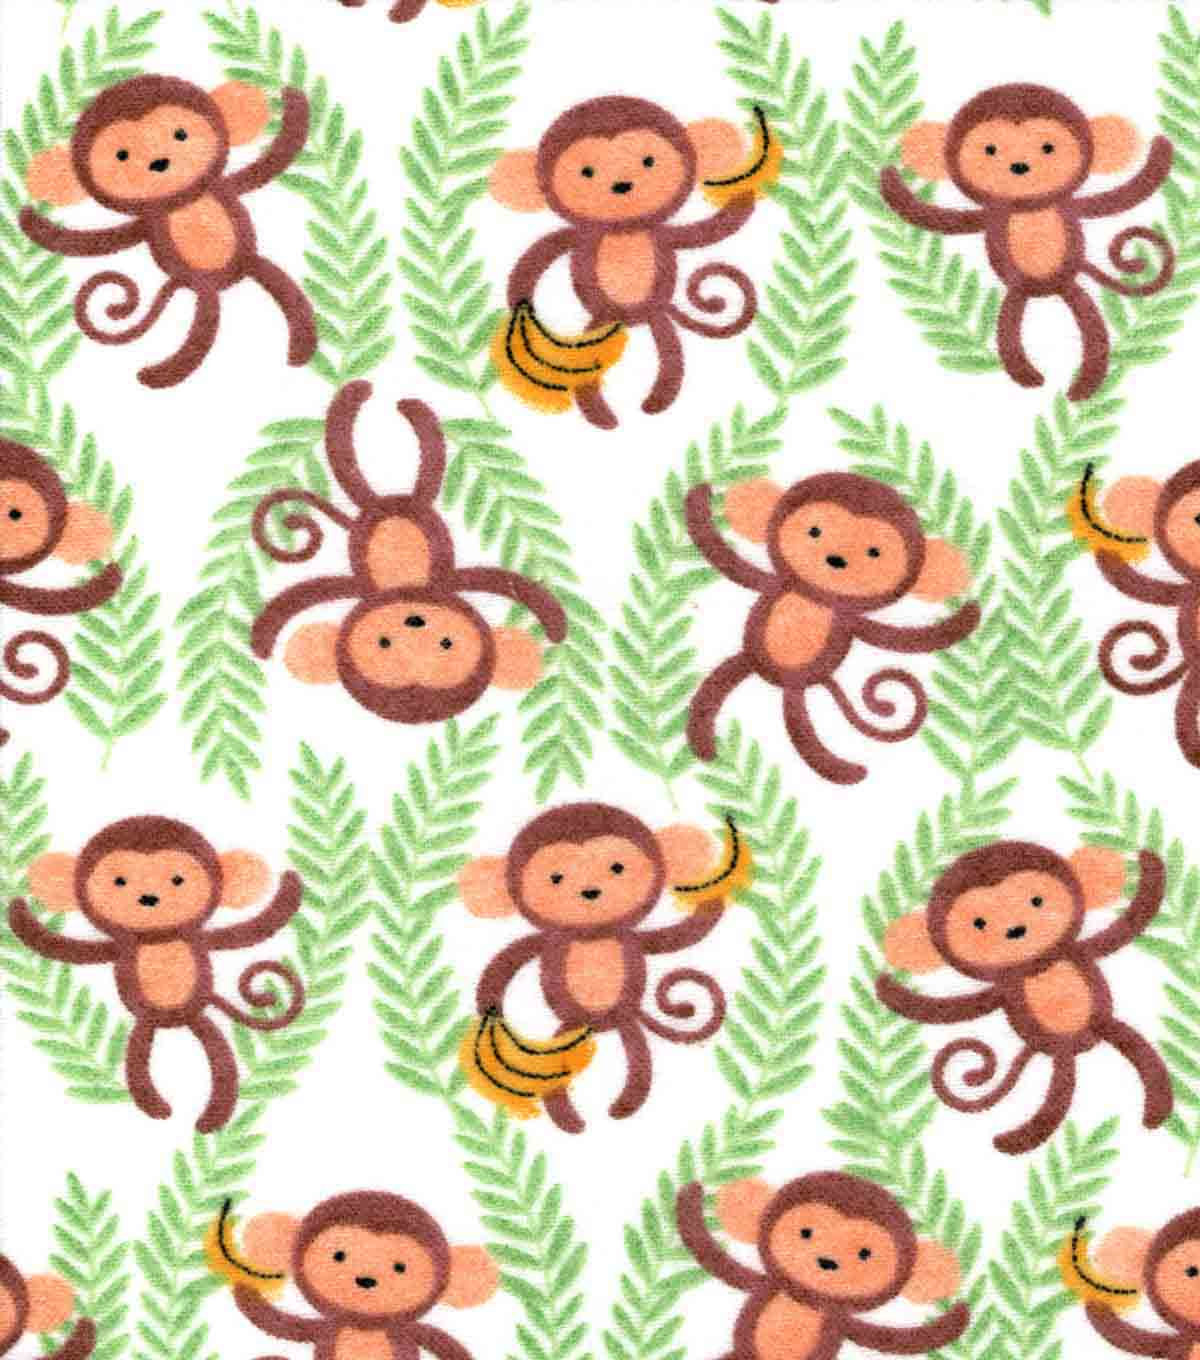 Snuggle Flannel Fabric 42\u0027\u0027-Monkeys & Vines on White